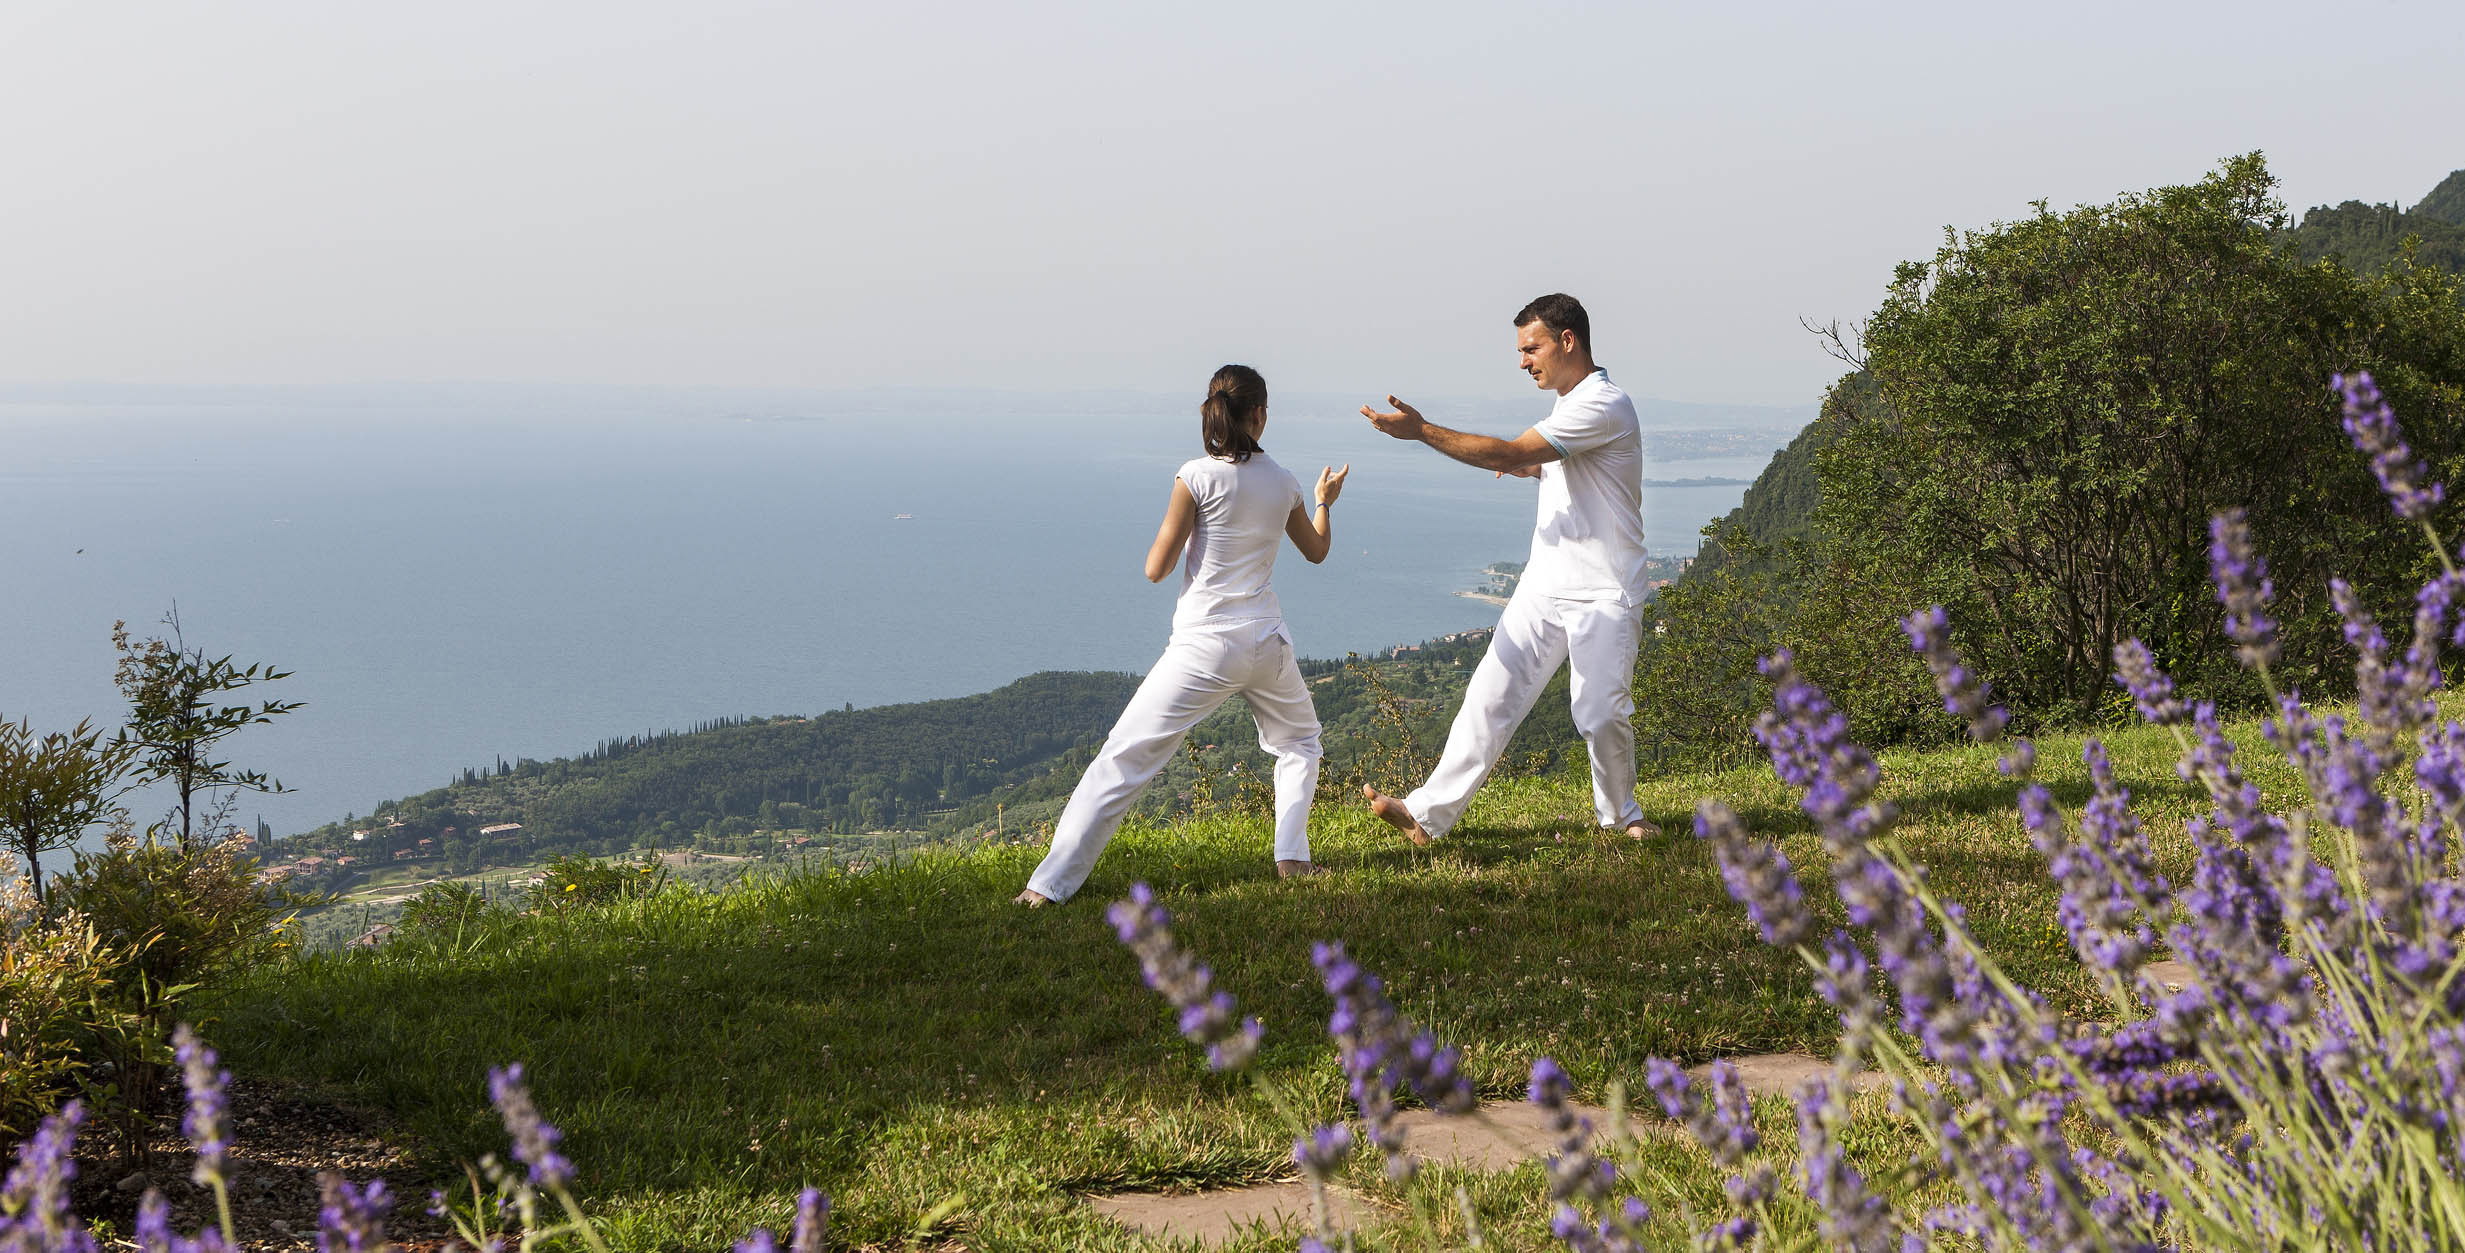 Tai-Chi in Italy relax